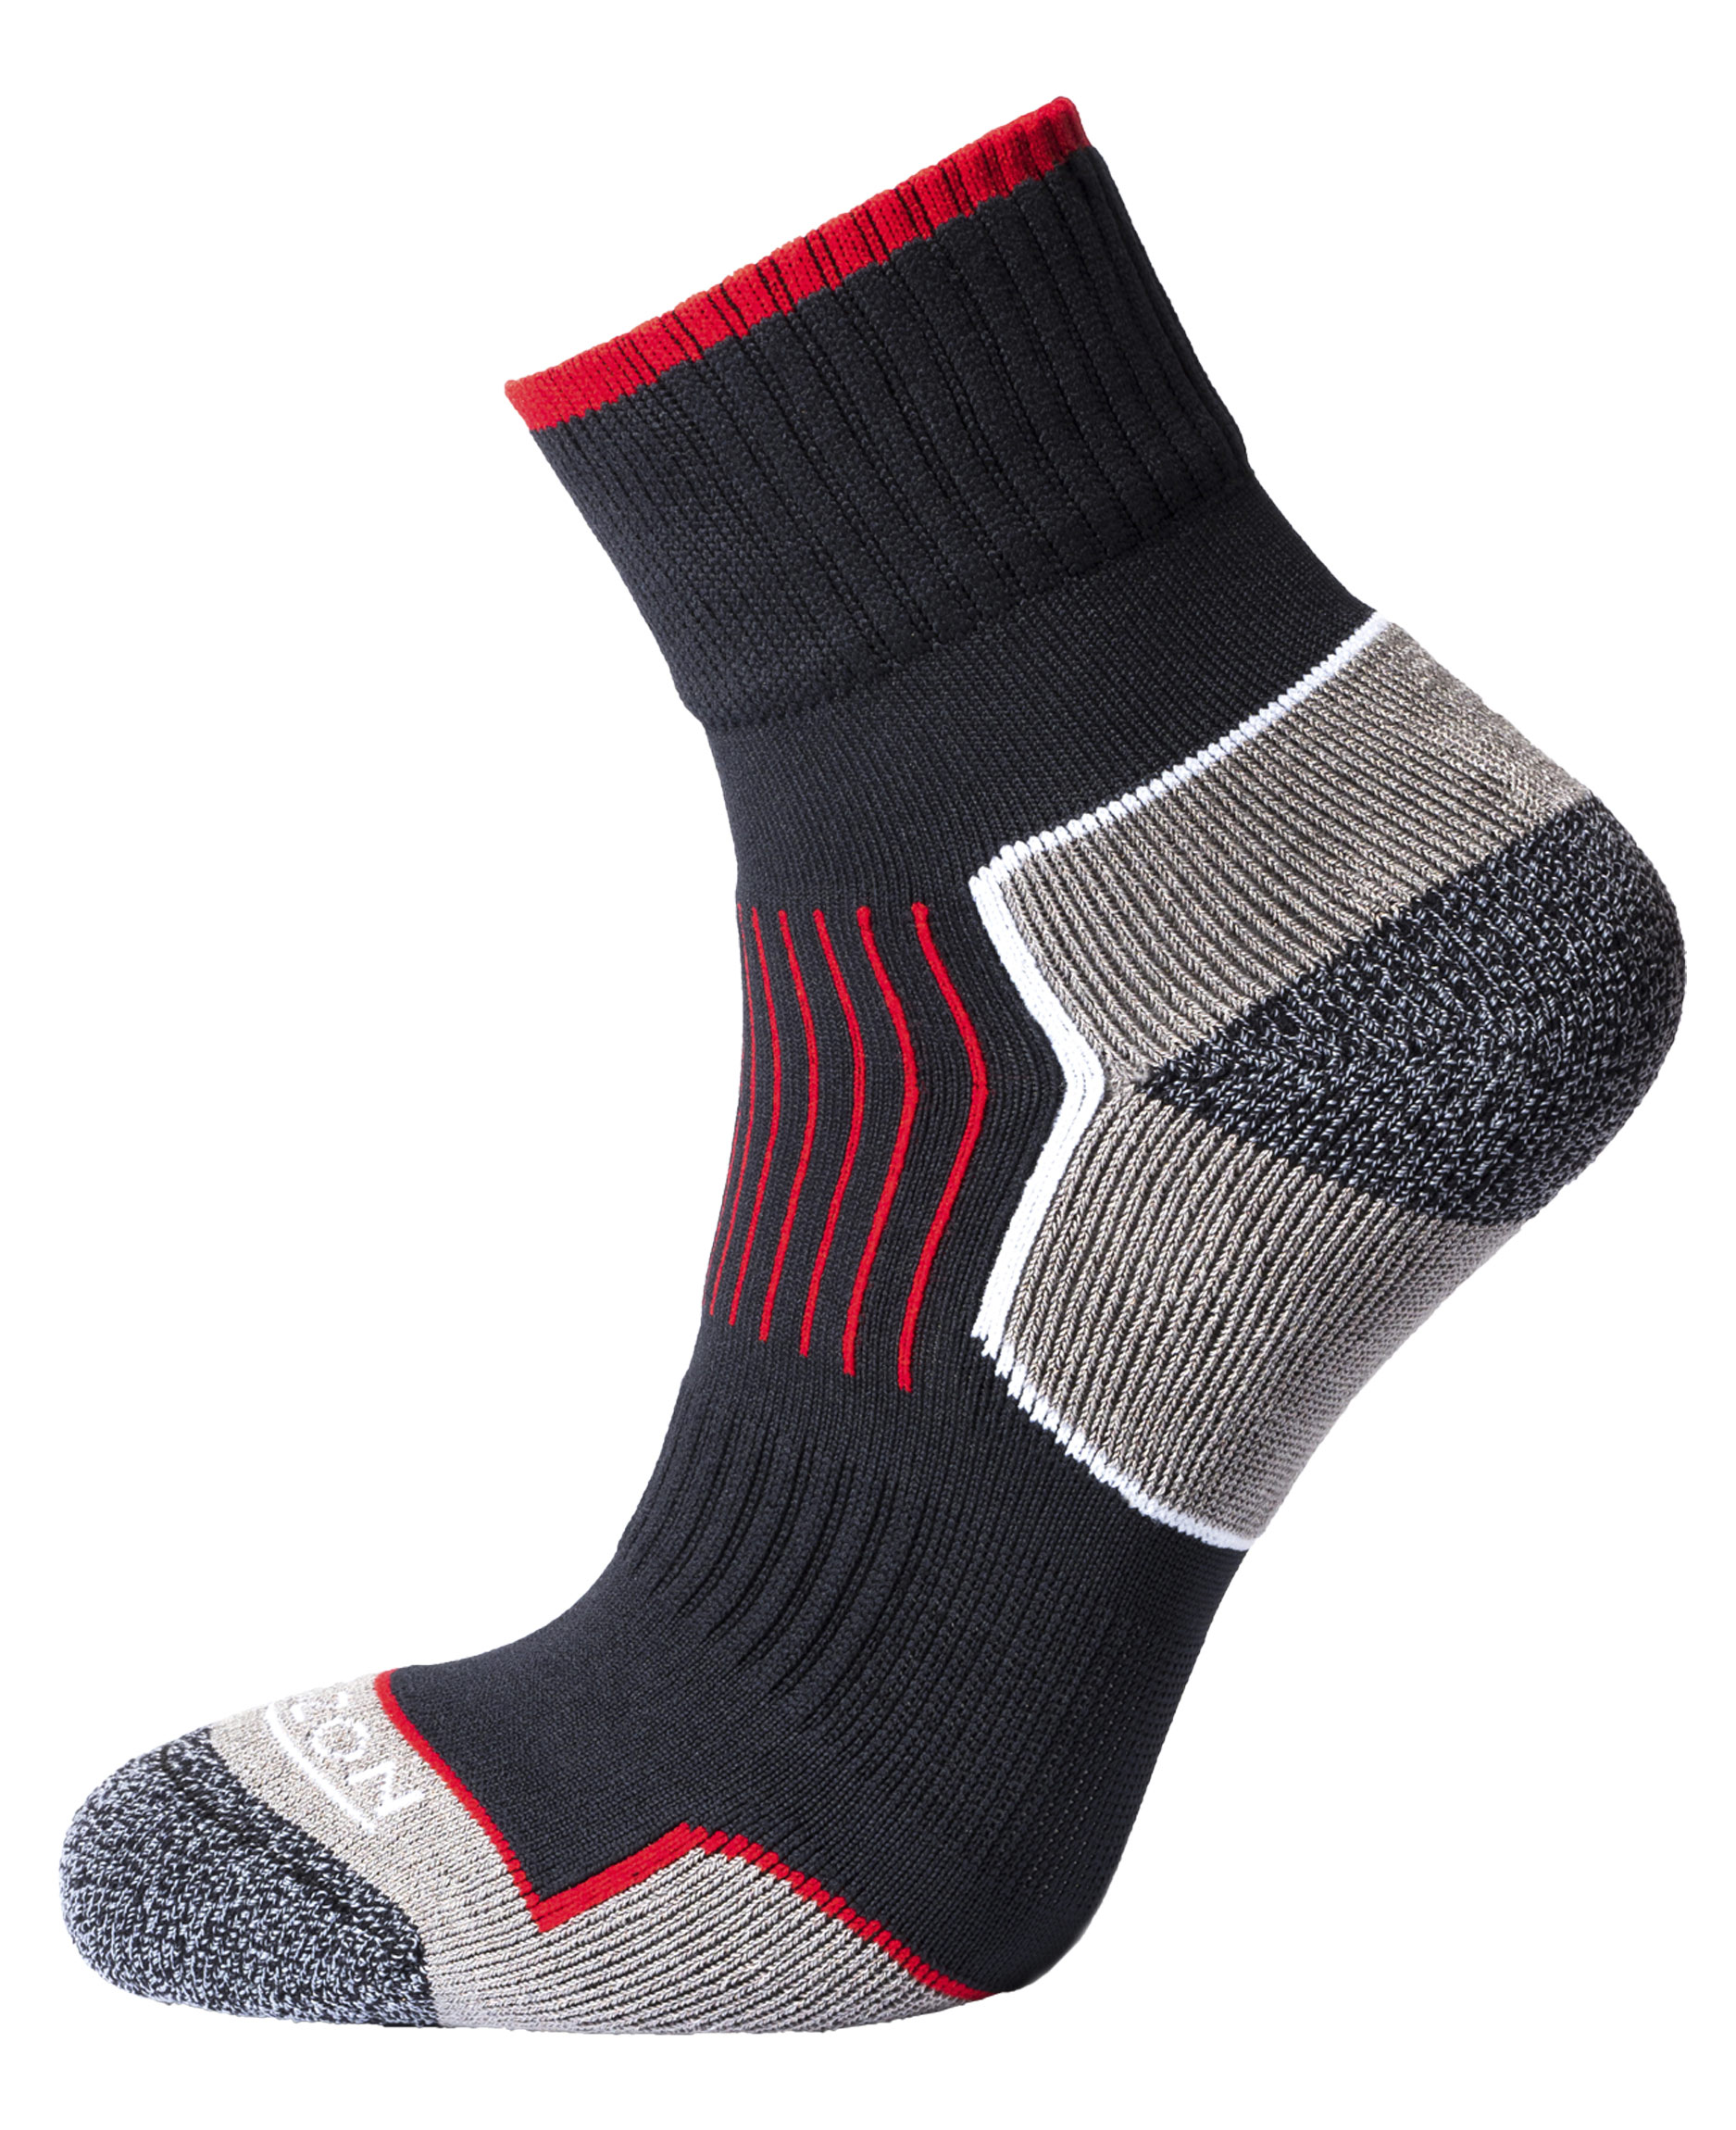 Atomic 29 Anthracite/Red